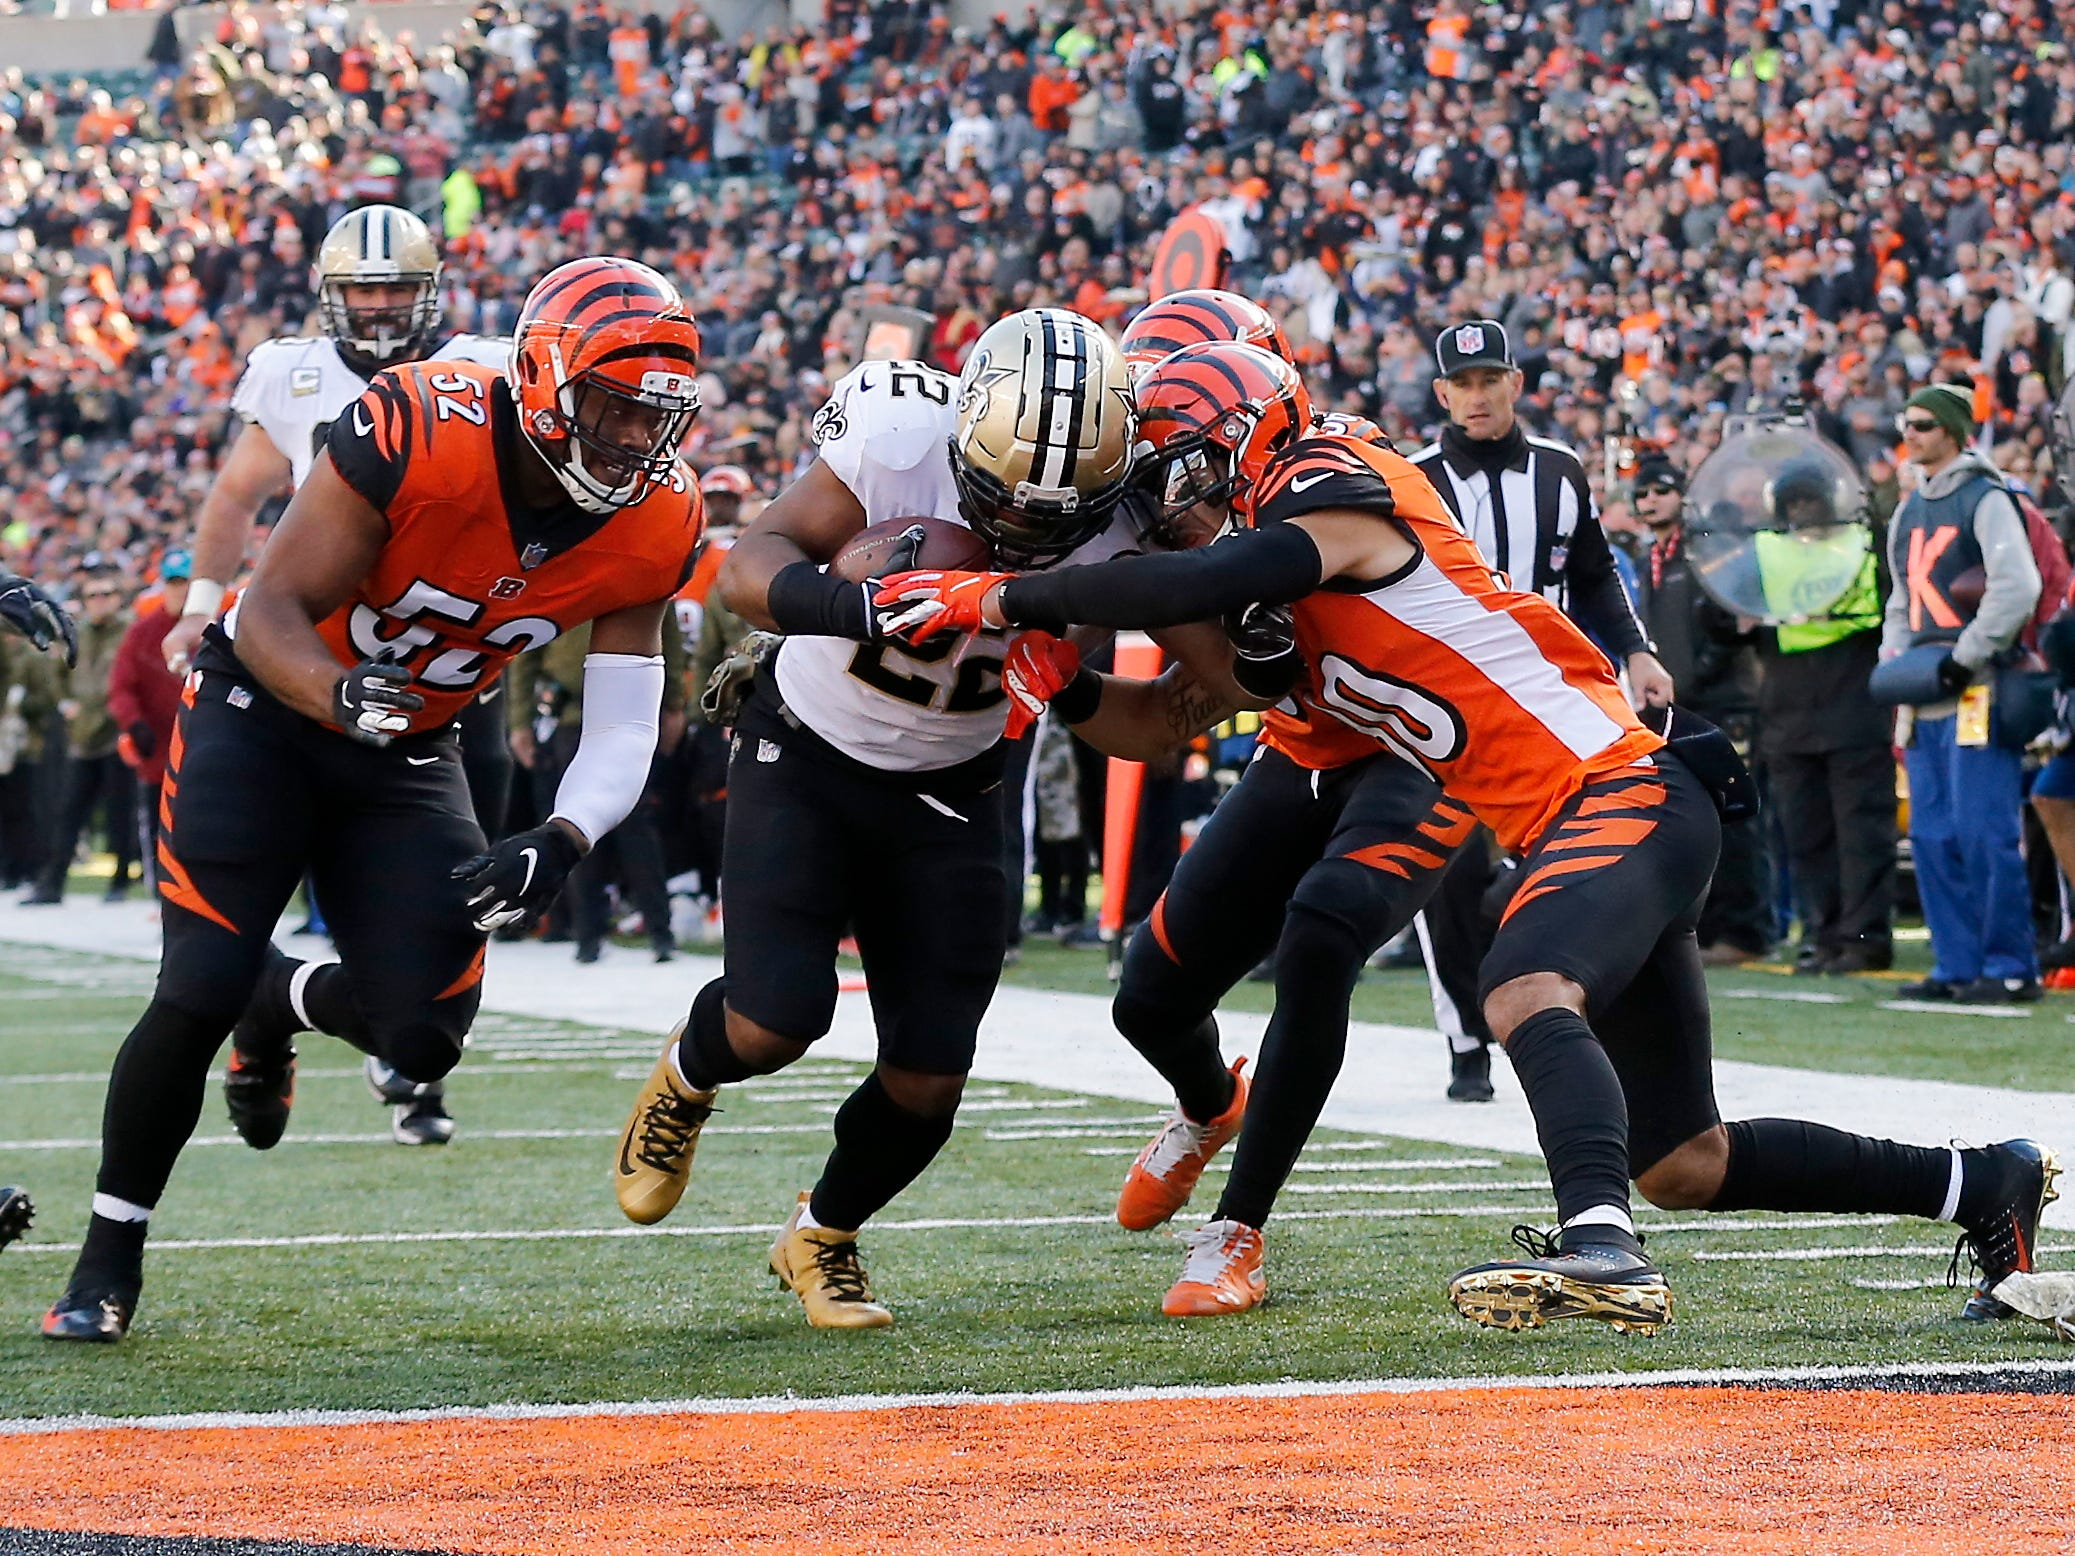 New Orleans Saints running back Mark Ingram (22) pushes through a group of Bengals defenders for a touchdown in the second quarter of the NFL Week 10 game between the Cincinnati Bengals and the New Orleans Saints at Paul Brown Stadium in downtown Cincinnati on Sunday, Nov. 11, 2018. The Saints led 35-7 at halftime.